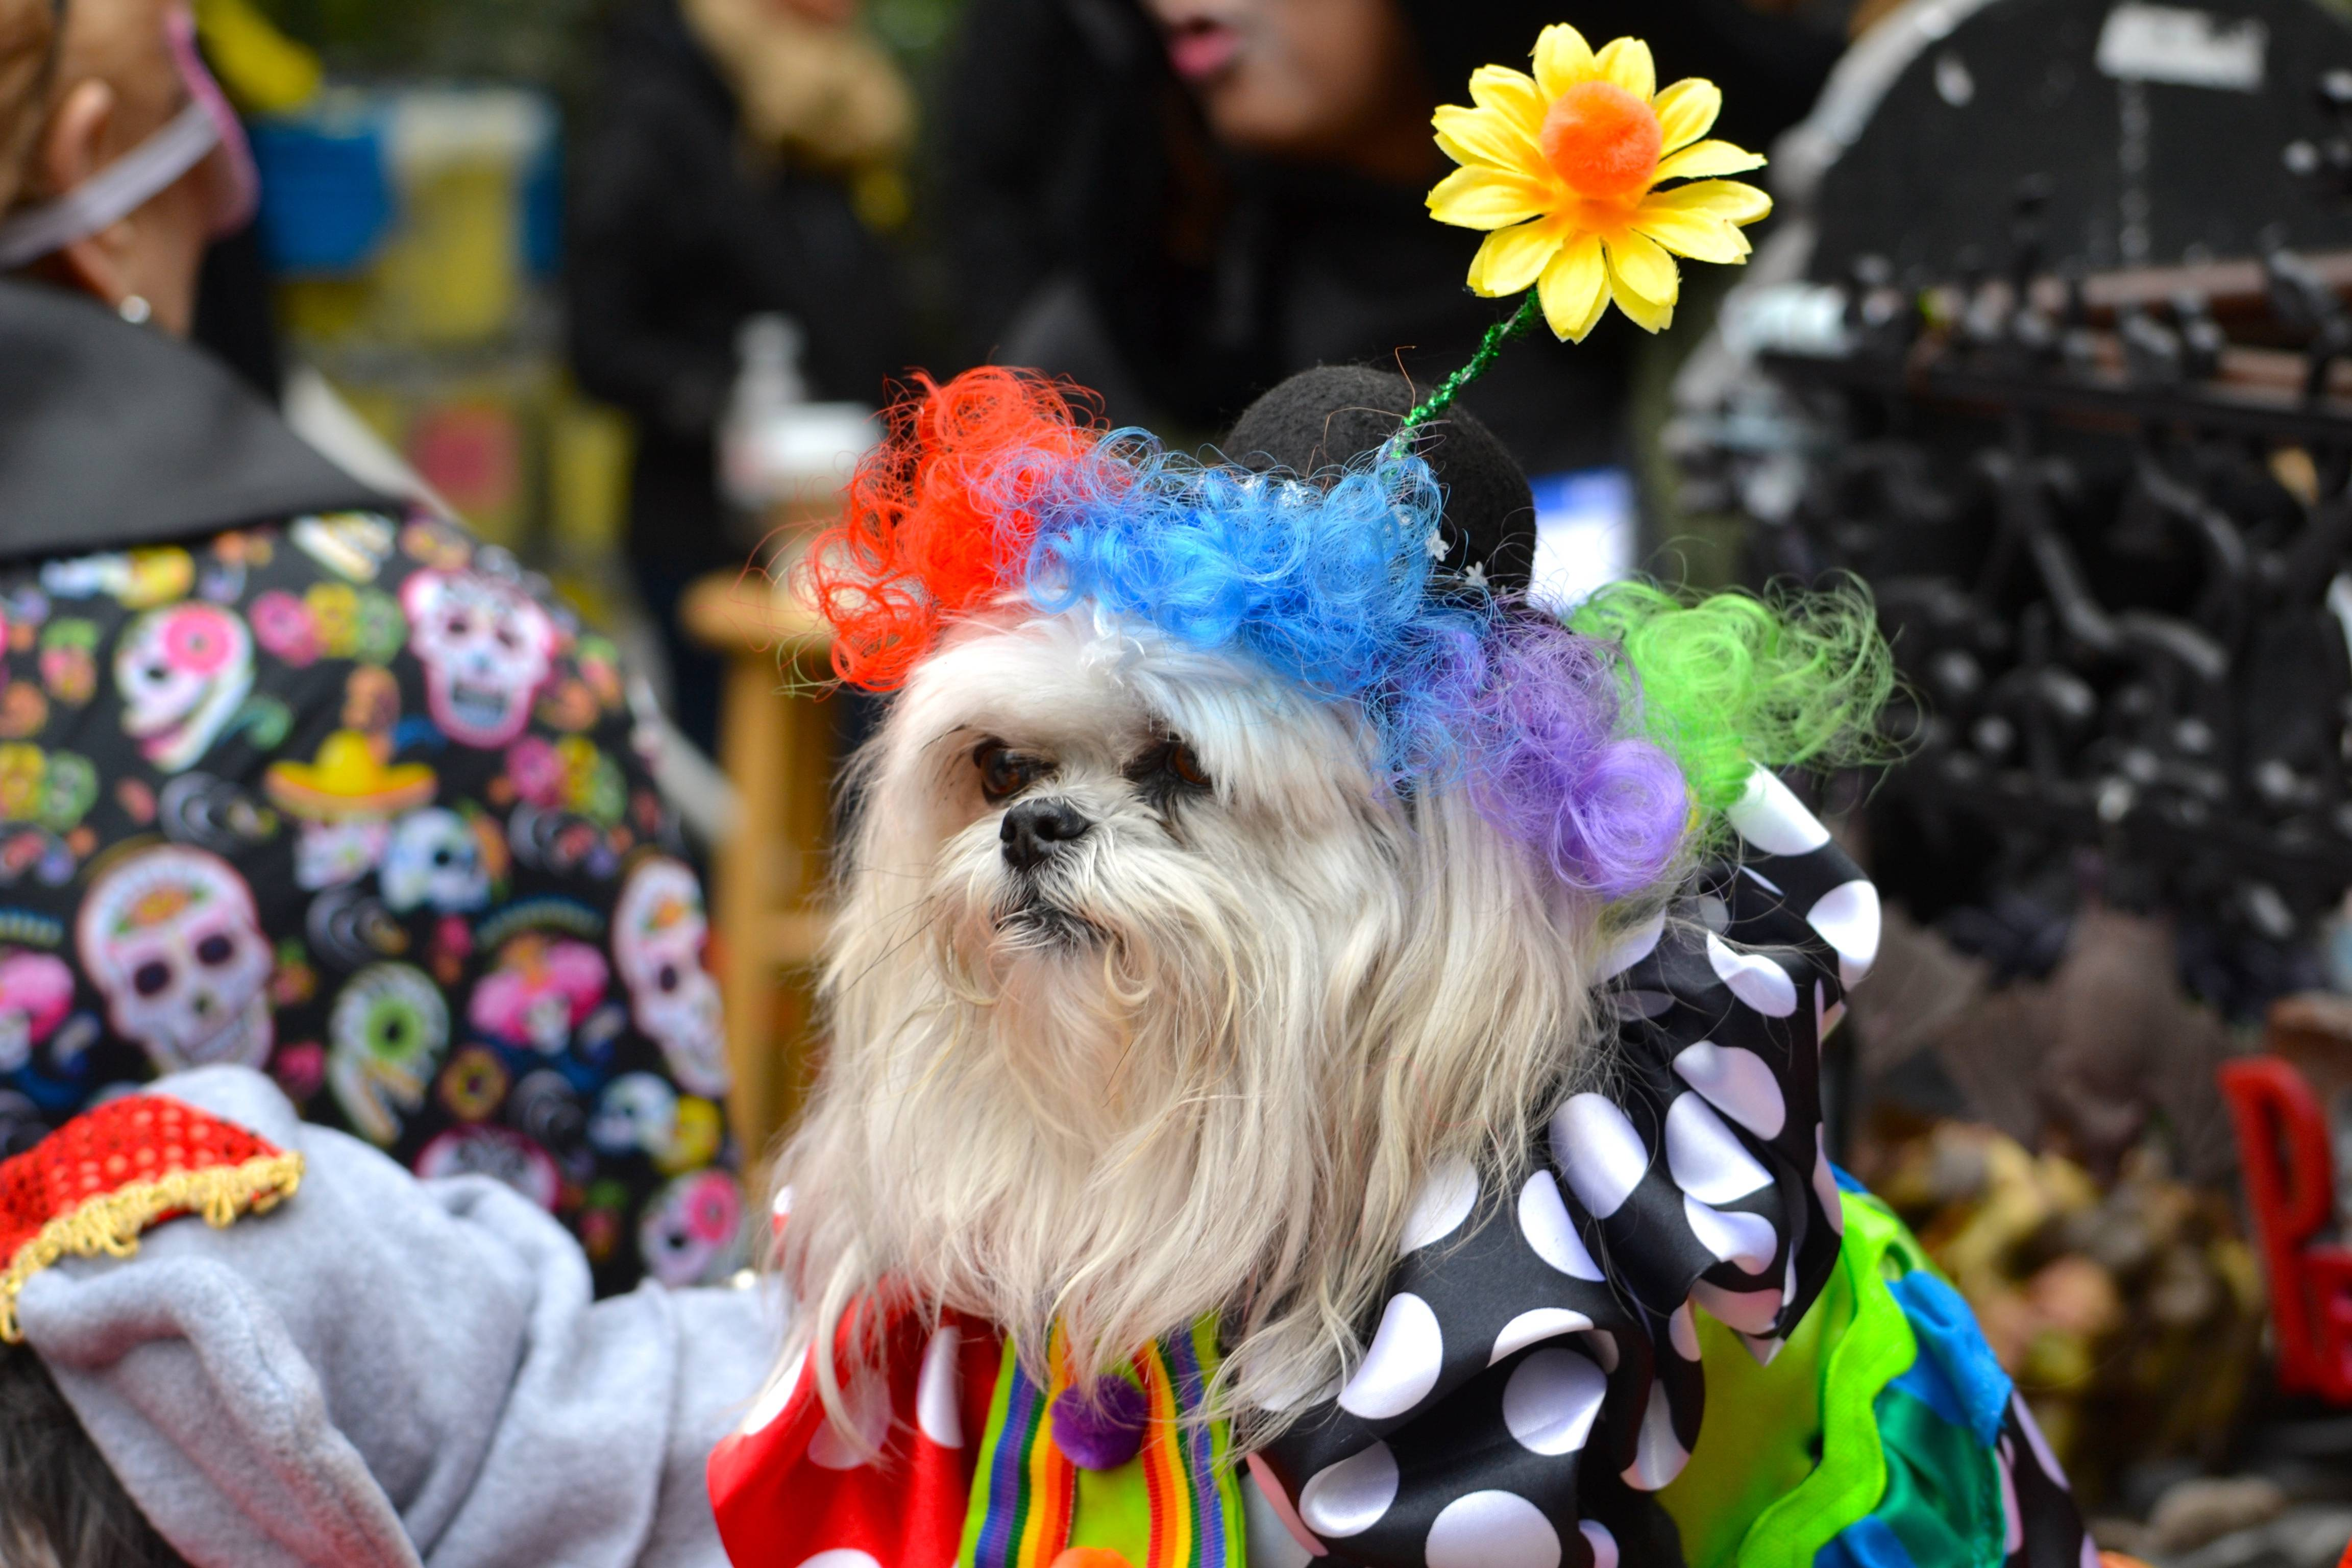 At Long Grove's Halloween Hound Parade, prizes will be awarded in categories like best owner-pet costumes, best costumed pet duo and more.